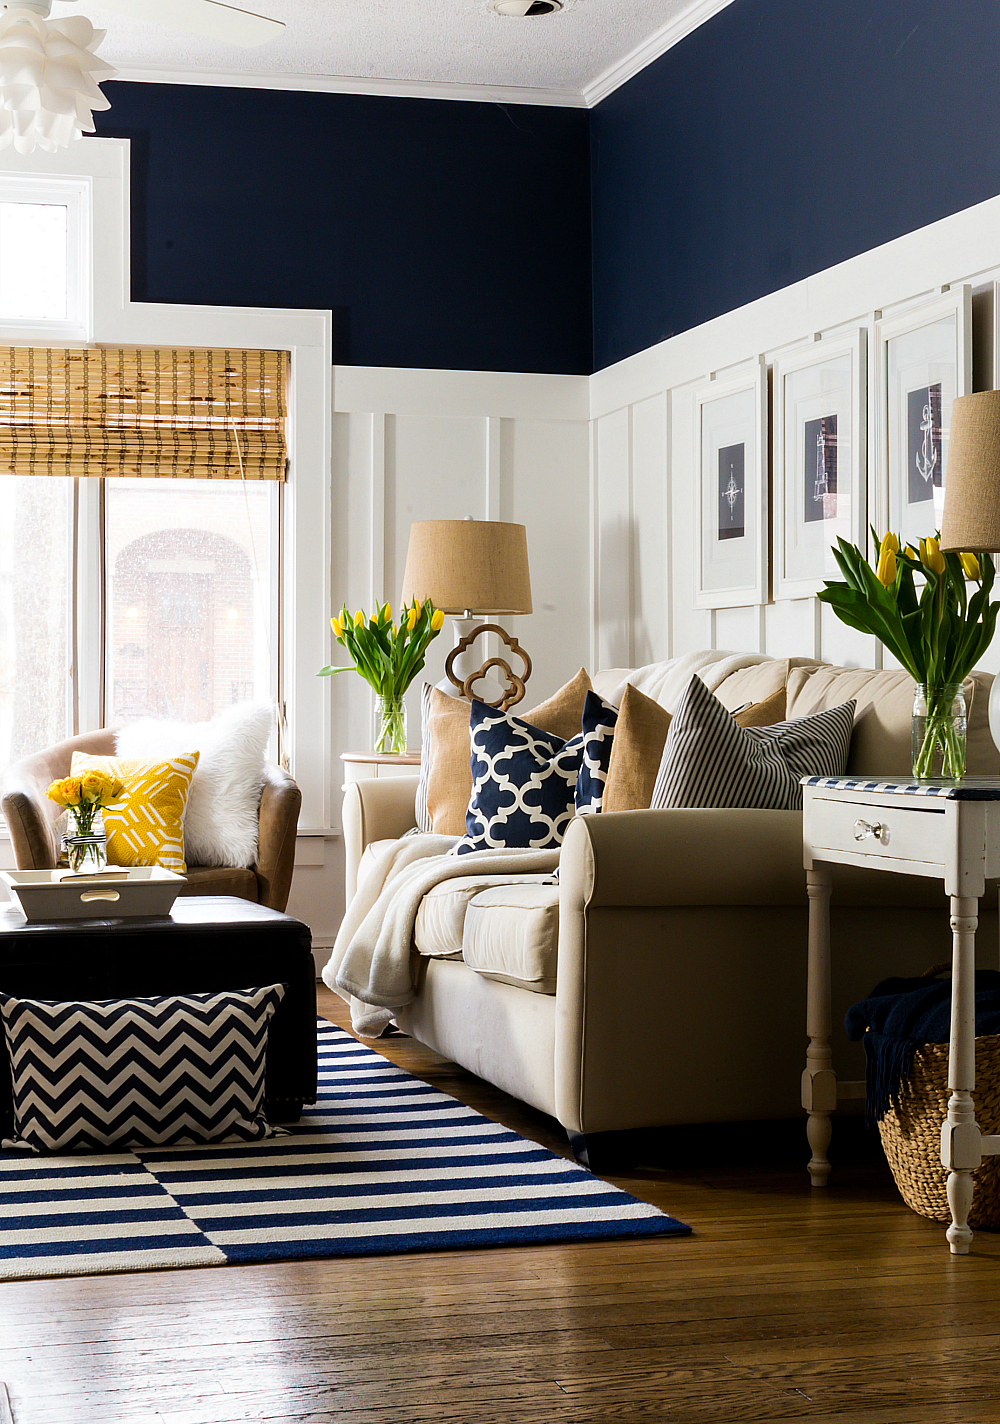 Living Room Yellow Ideas spring decor ideas in navy and yellow - it all started with paint